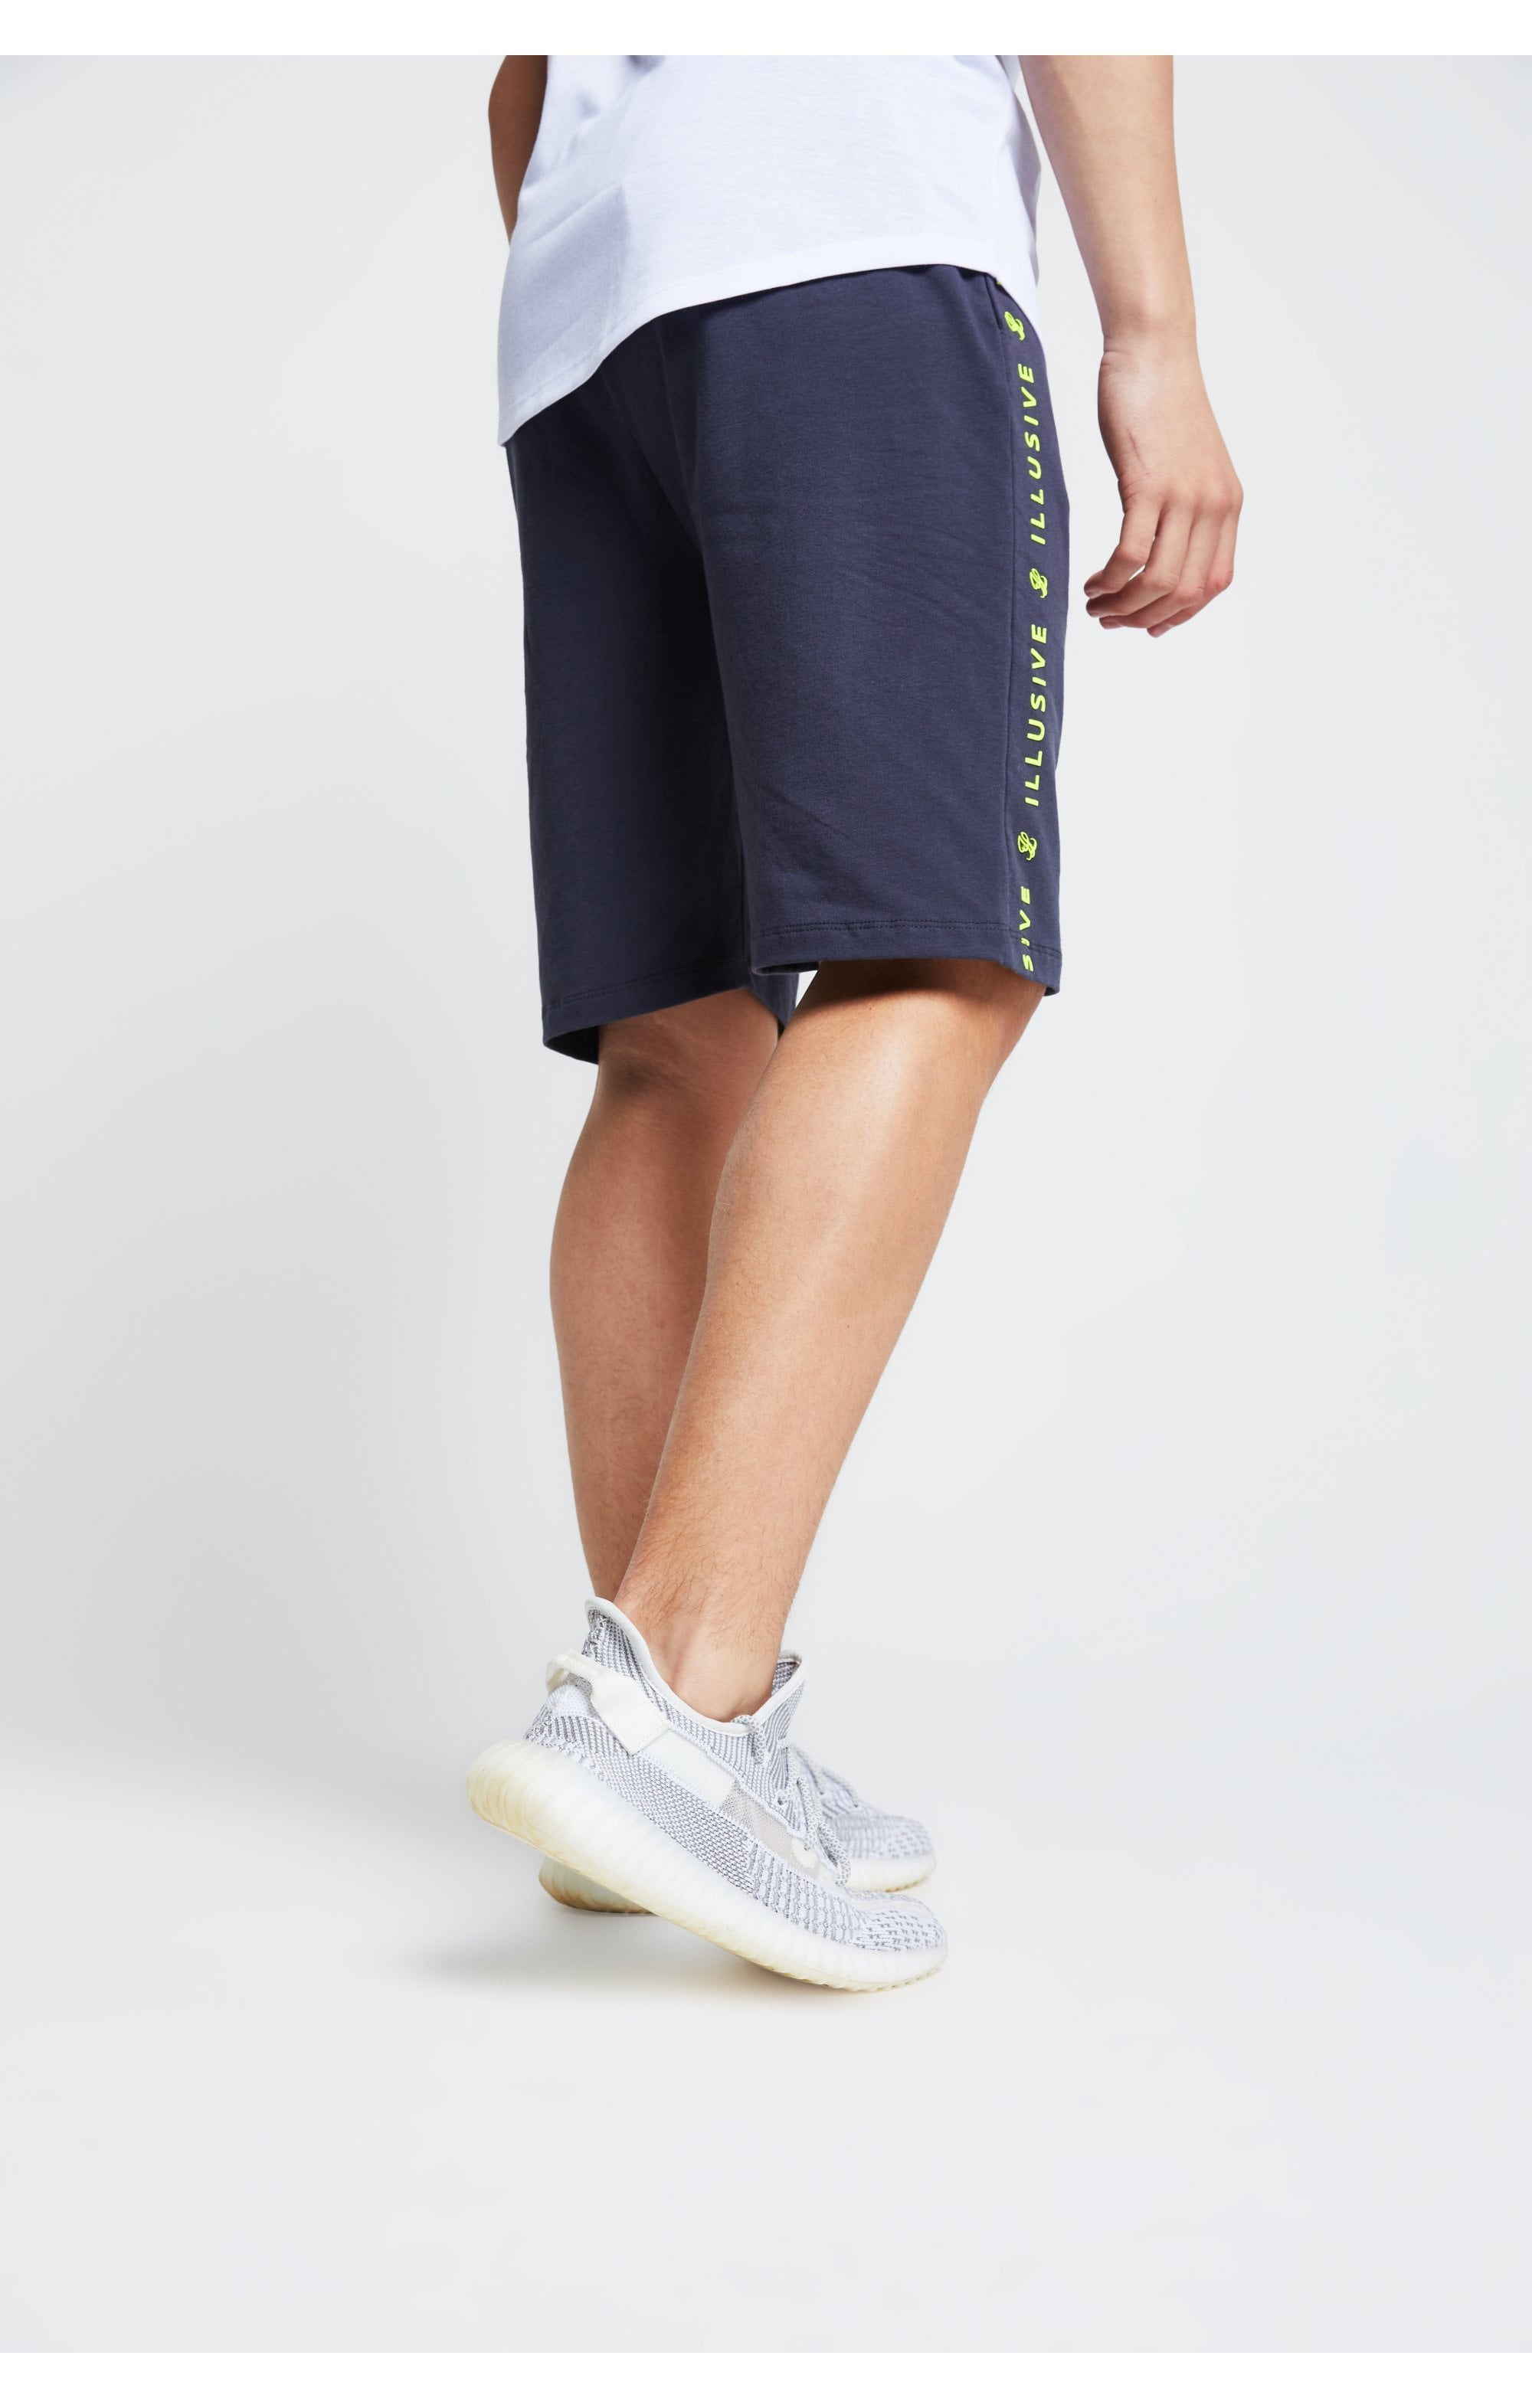 Illusive London Shorts Jersey - Grau und Neongelb (2)